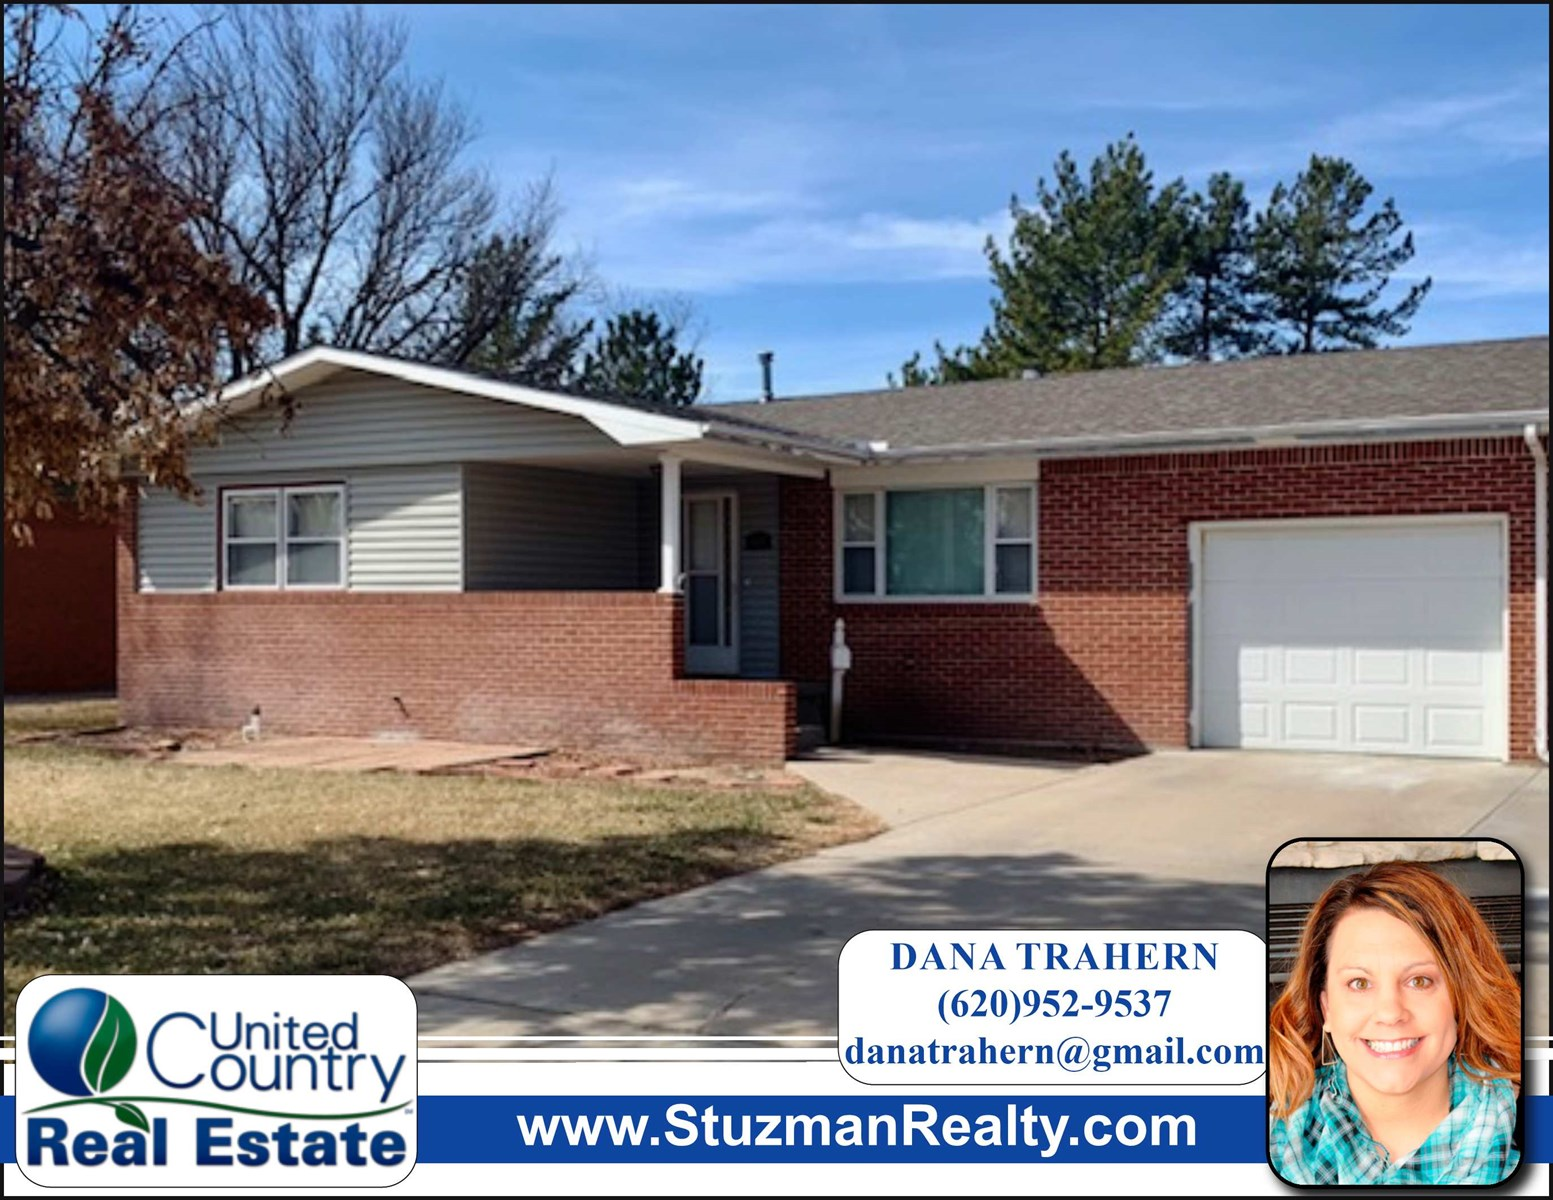 LARGE UPDATED HOME FOR SALE IN ULYSSES, KS